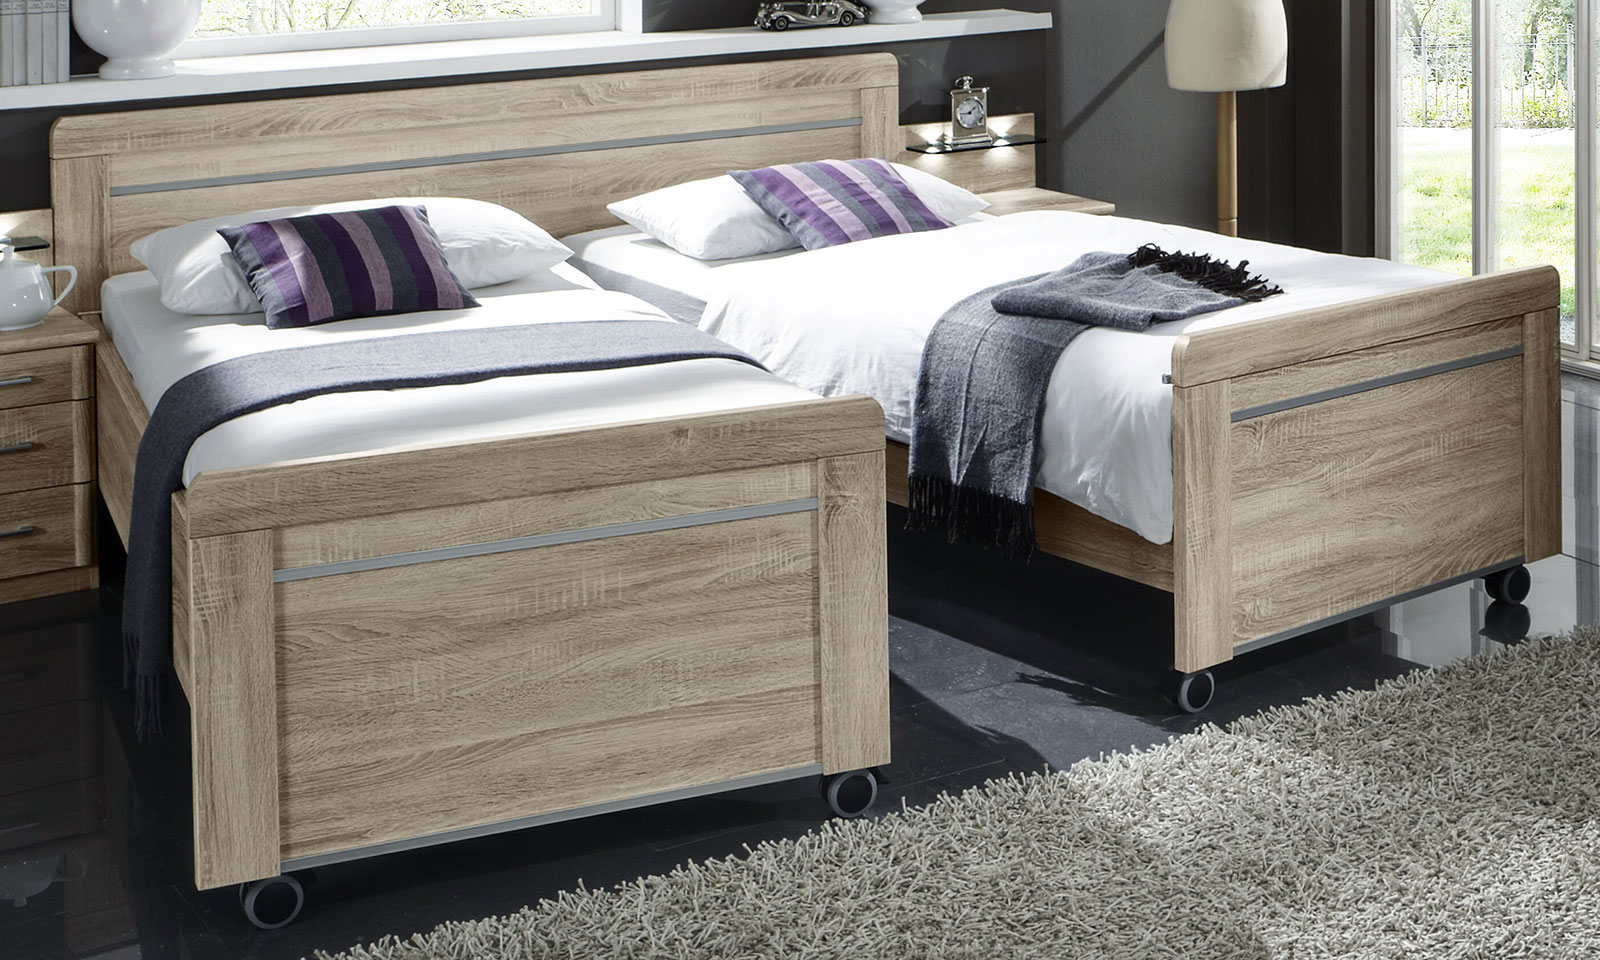 auseinander geschobenes seniorenbett runcorn in eiche s gerau dekor. Black Bedroom Furniture Sets. Home Design Ideas